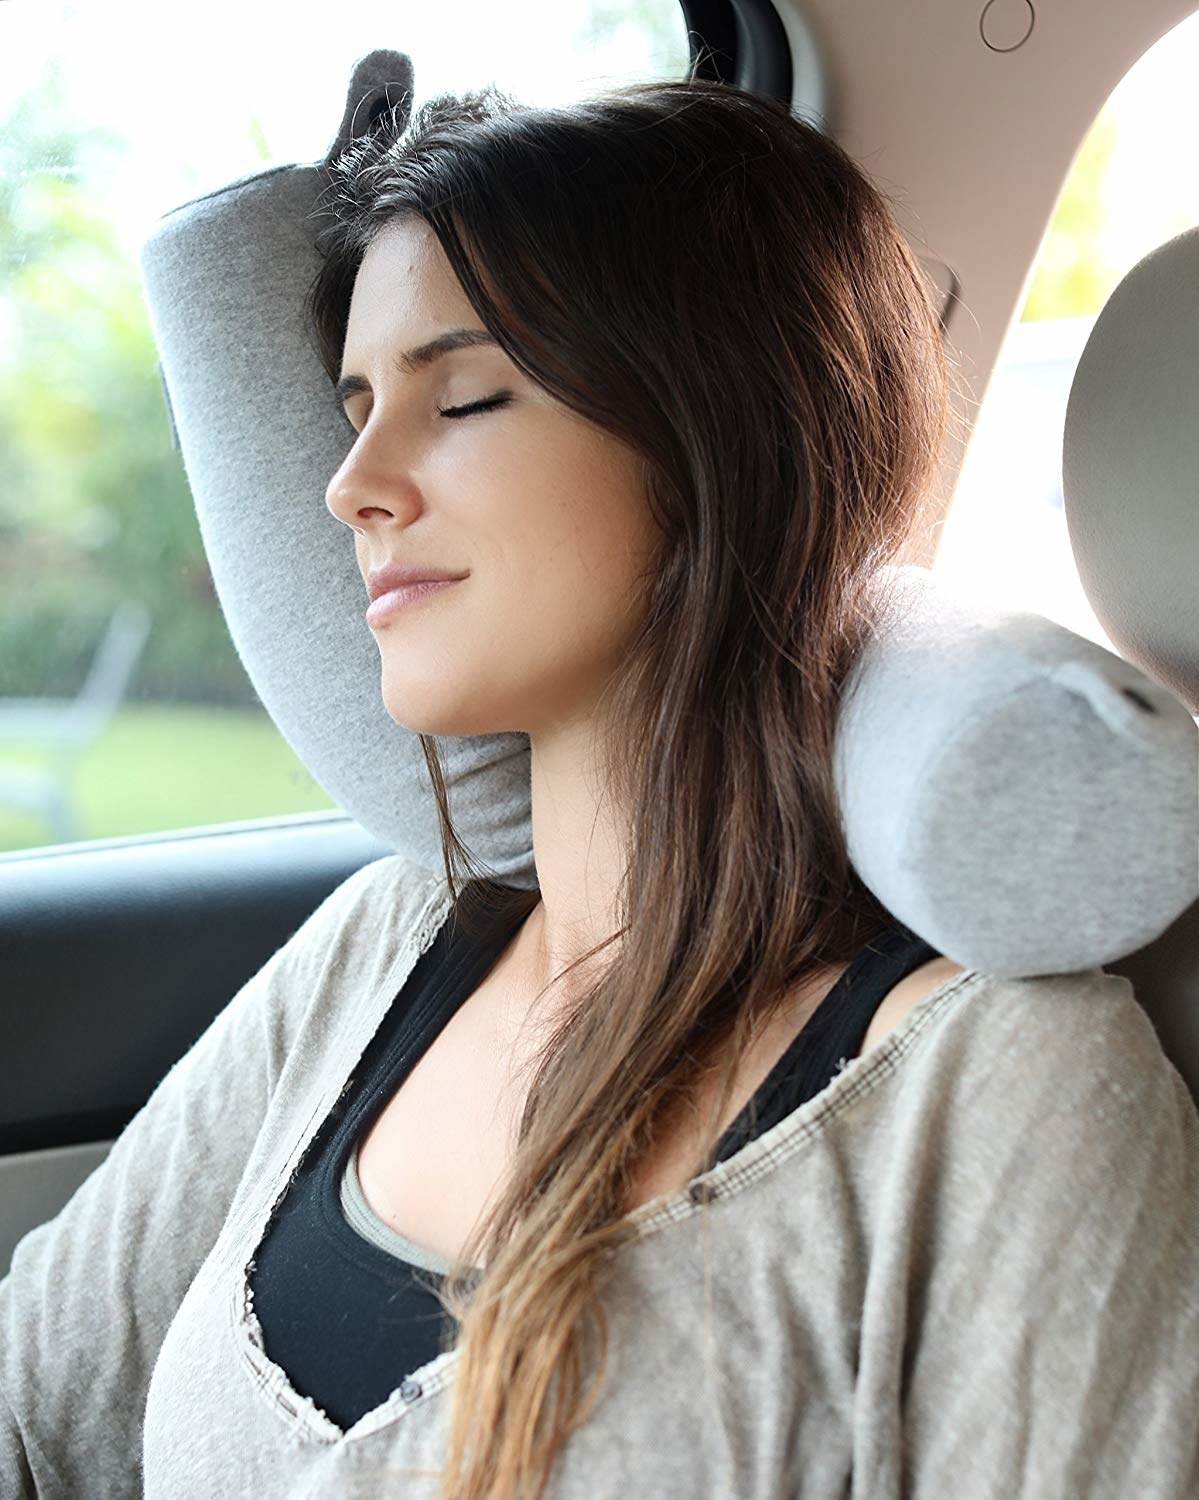 Model resting their head on the pillow against a car window